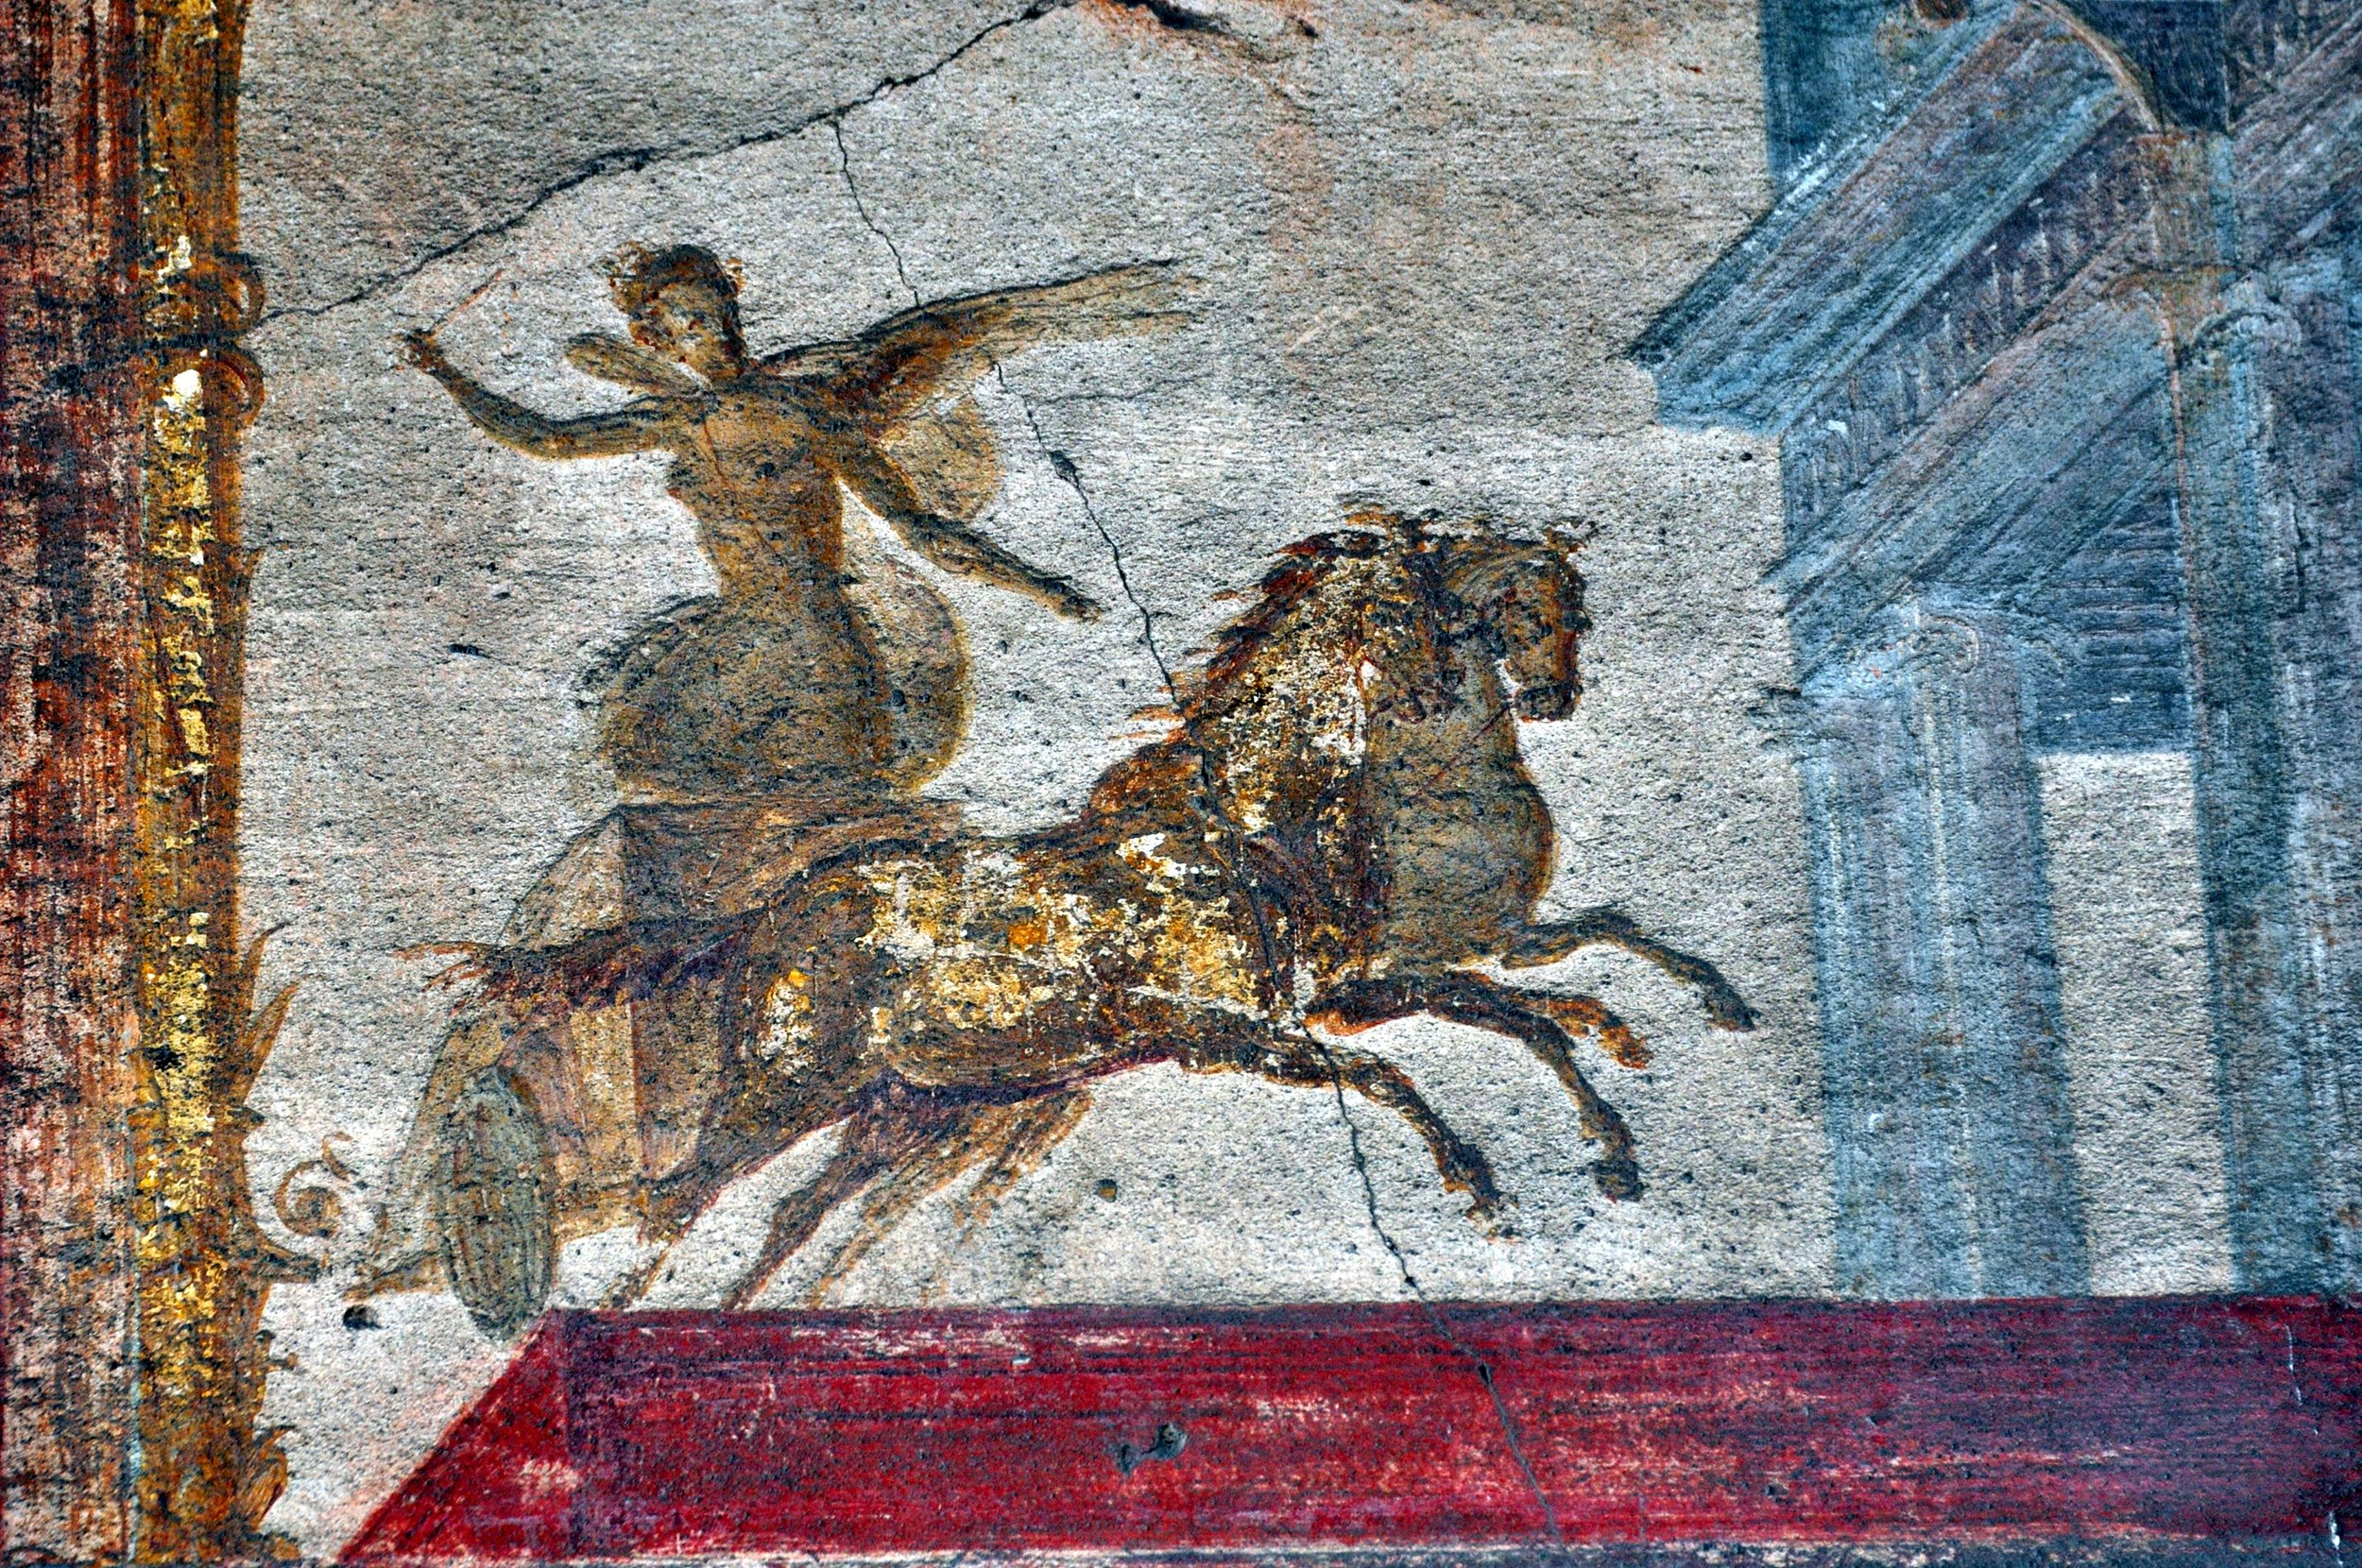 A fresco in an excavated house in Pompeii. The town was hidden under mountains of ash and forgotten for 1,600 years.